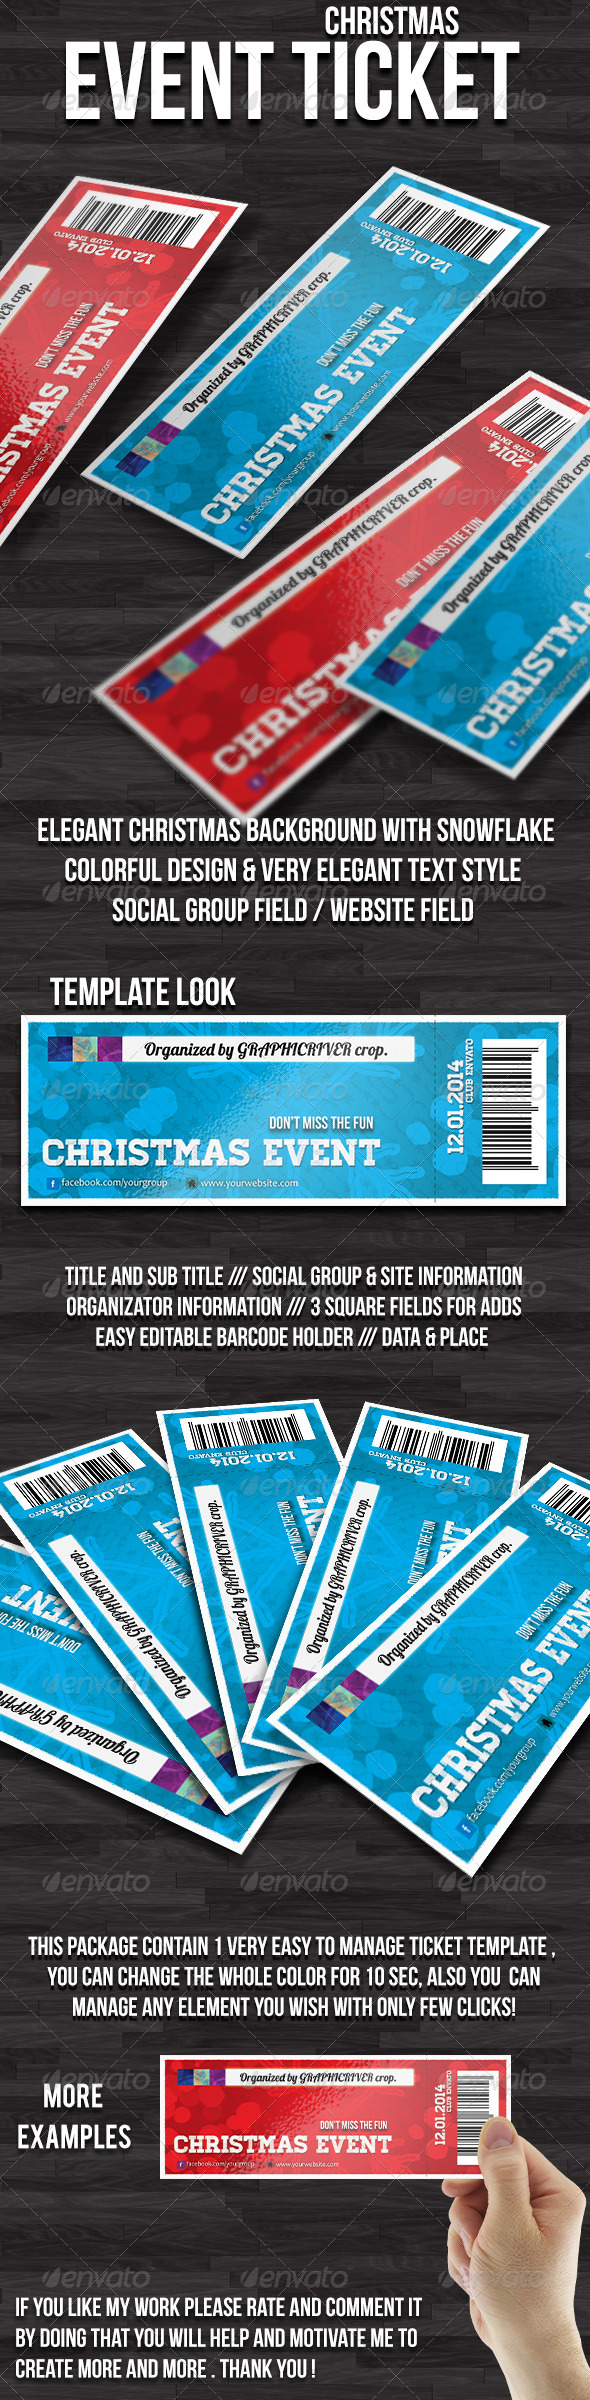 GraphicRiver Christmas event ticket 6255107